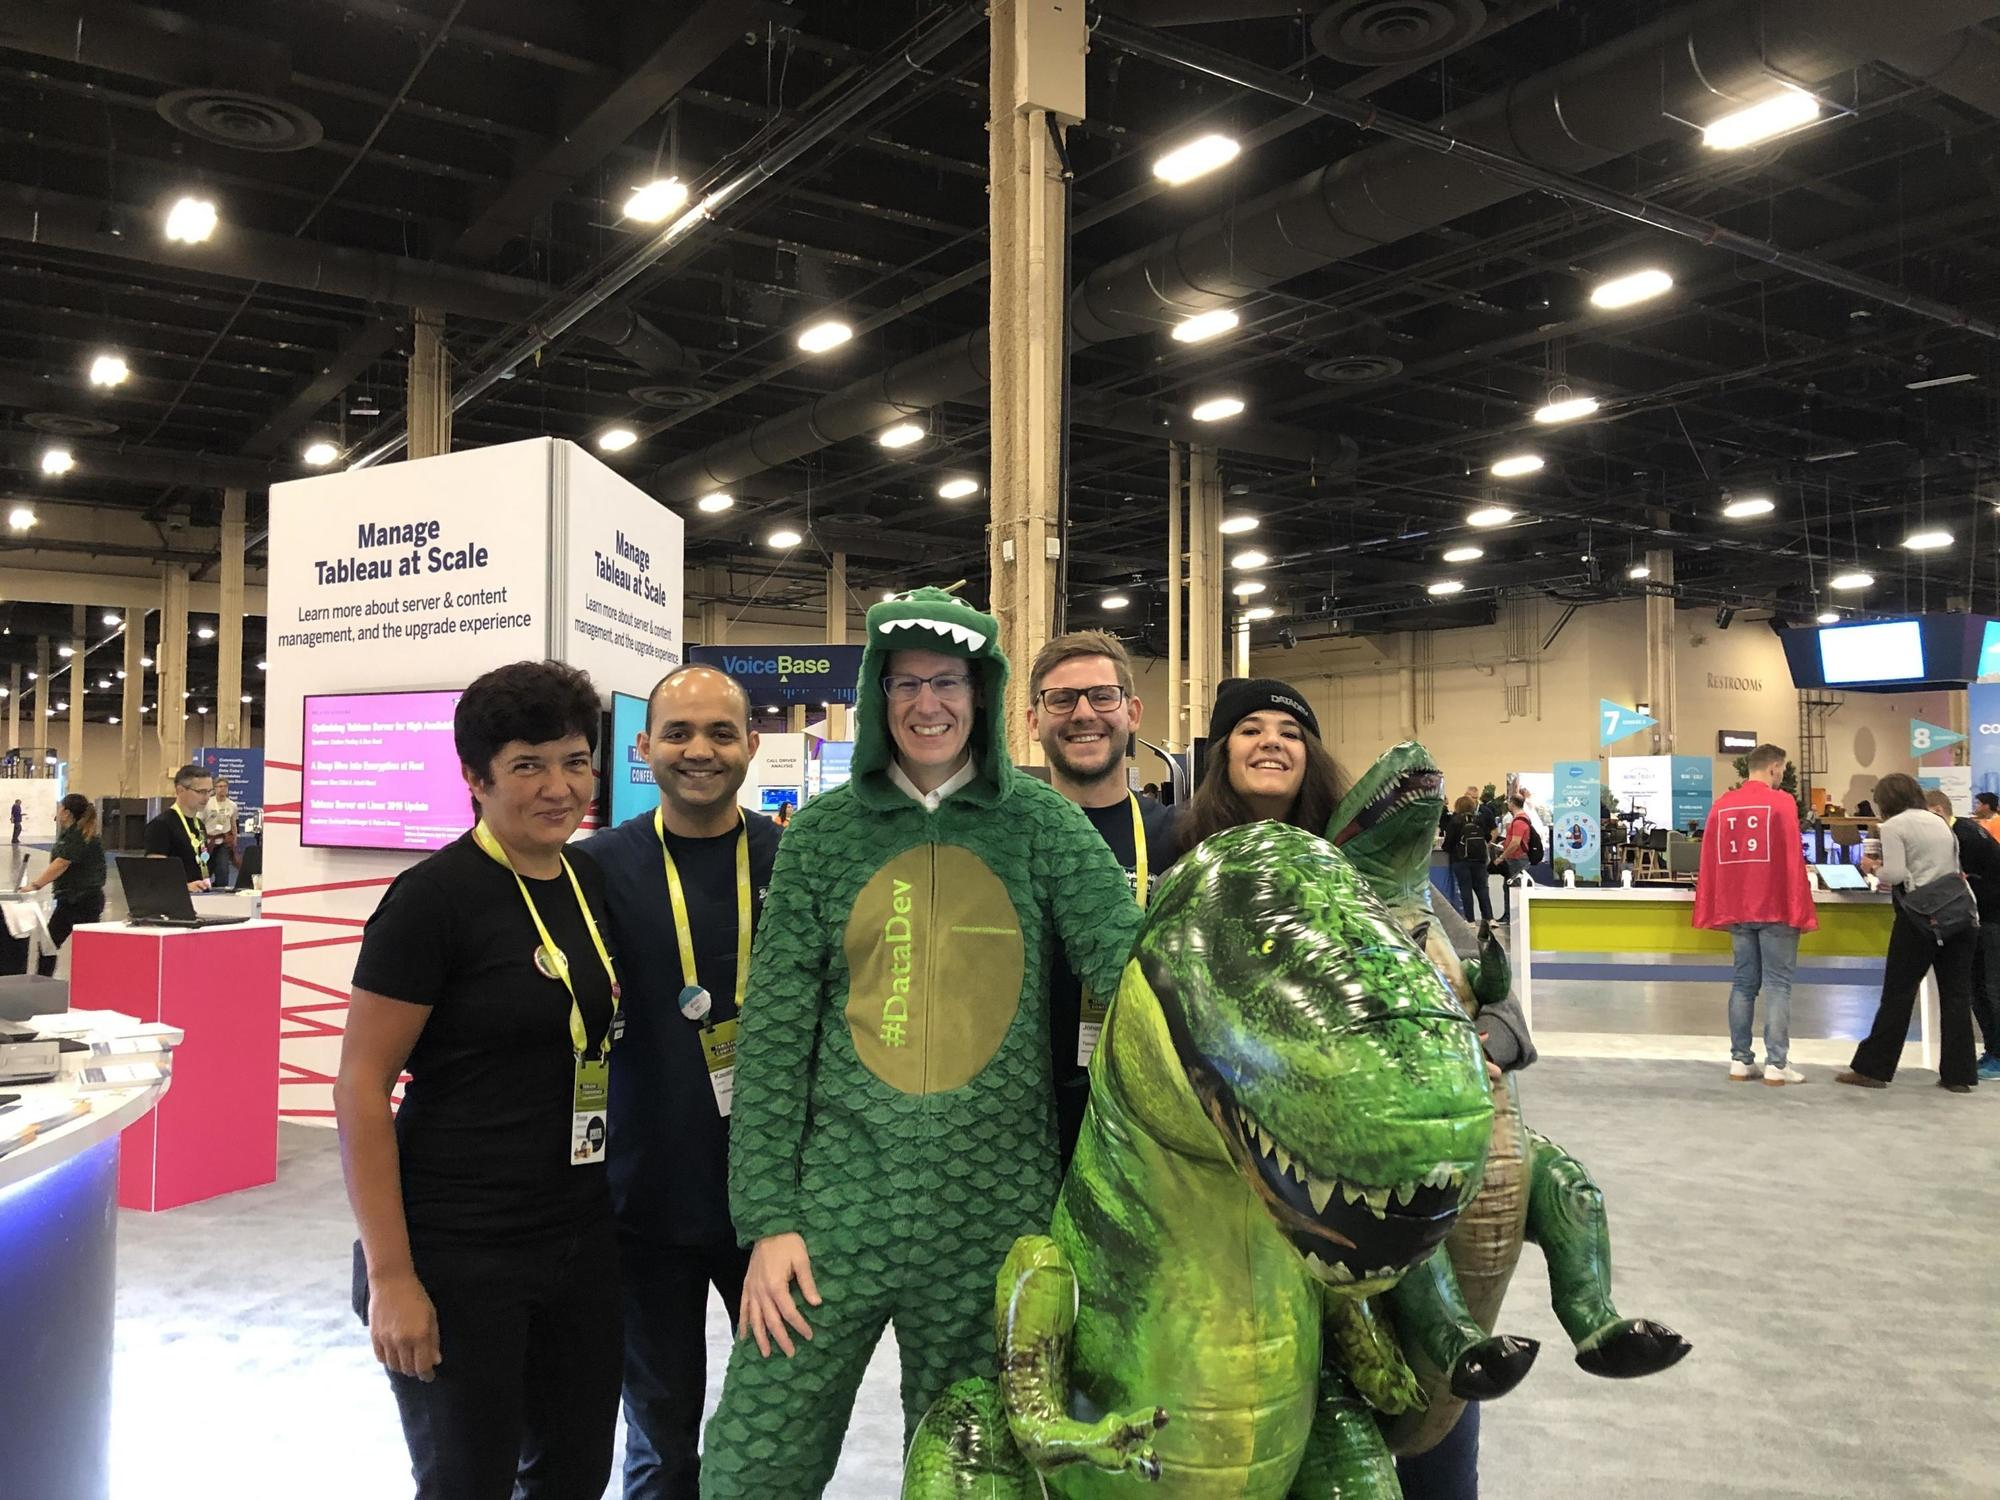 Group of four posing with man in glasses in T-Rex costume, alongside a giant inflatable T-Rex